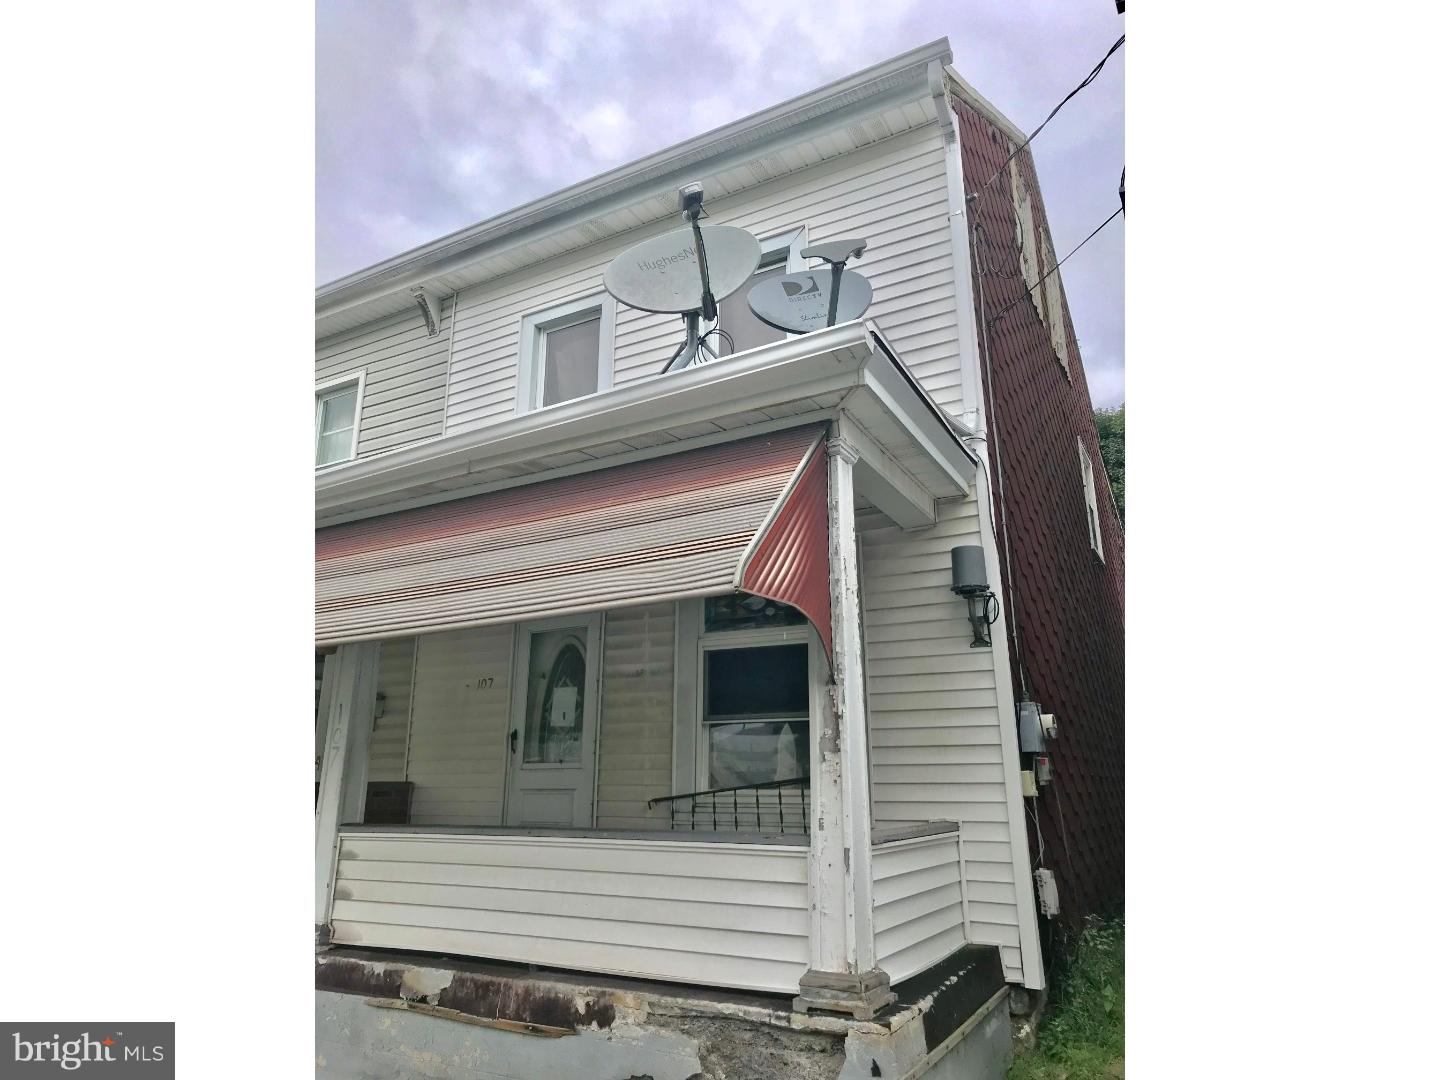 107 S MILL STREET, SAINT CLAIR, PA 17970